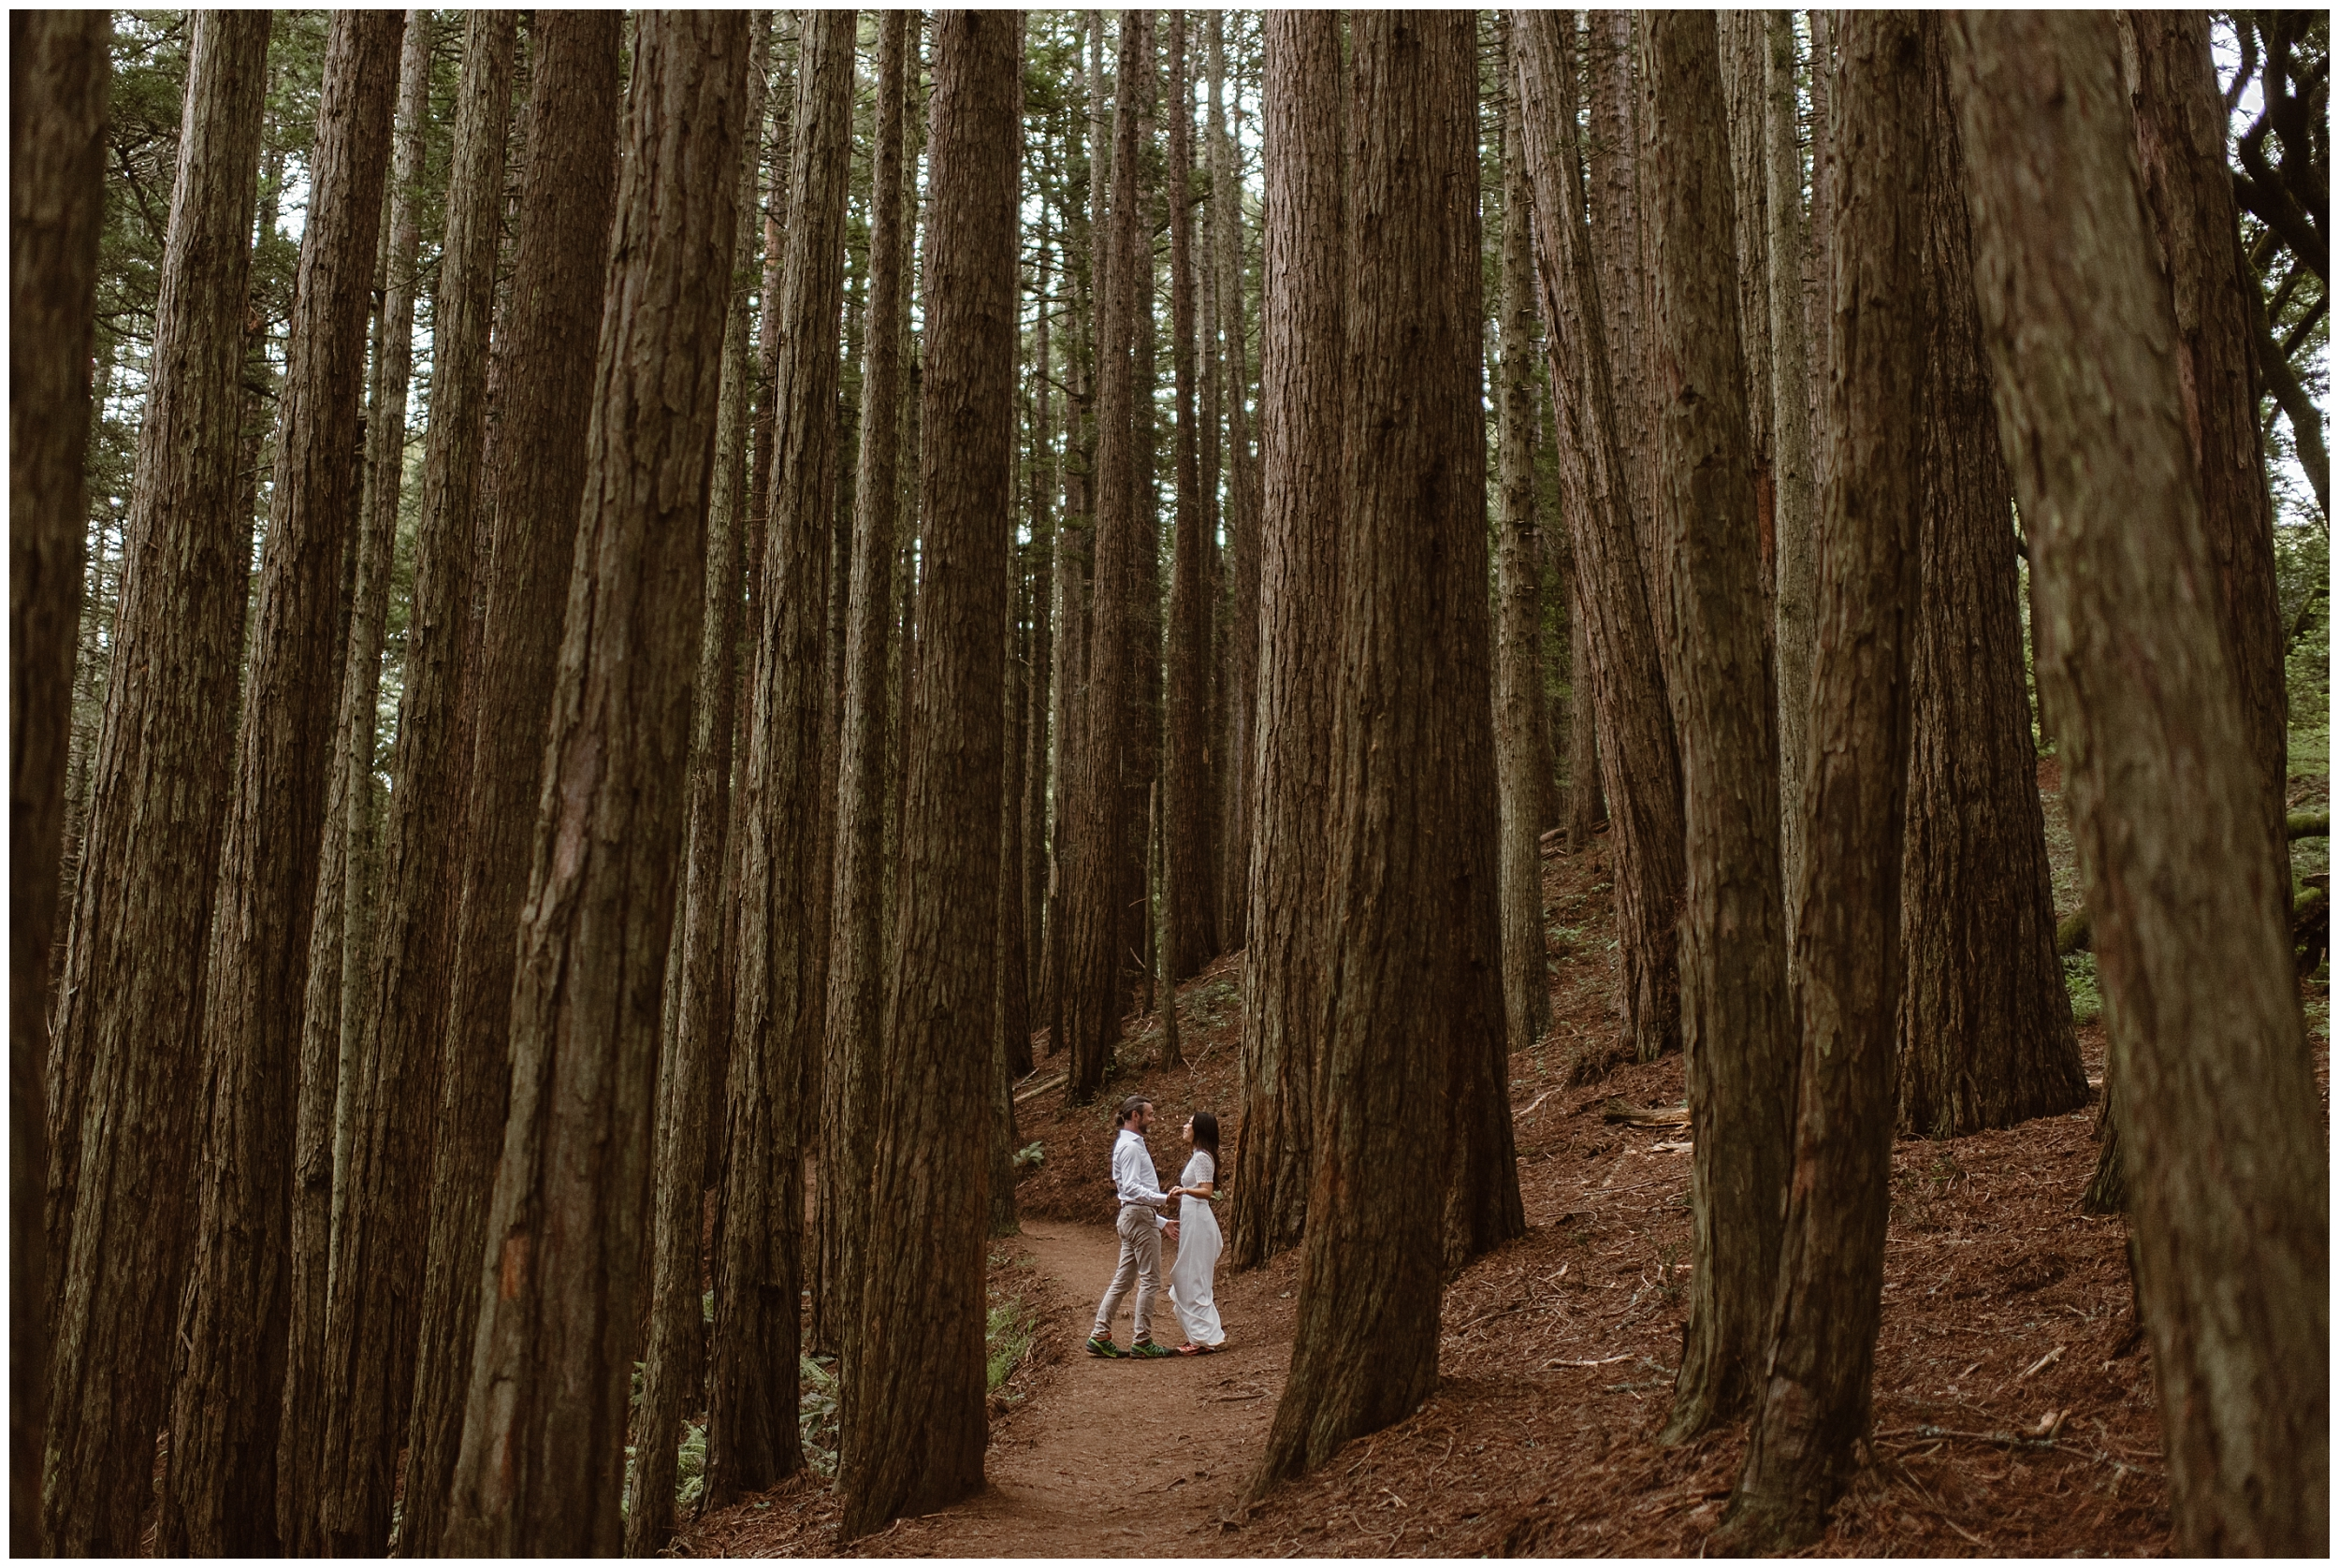 A bride and groom hold hands and embrace as they say their vows to each other in a wooded forest in the pacific northwest. This adventure elopement was part of a destination elopement in Washington.